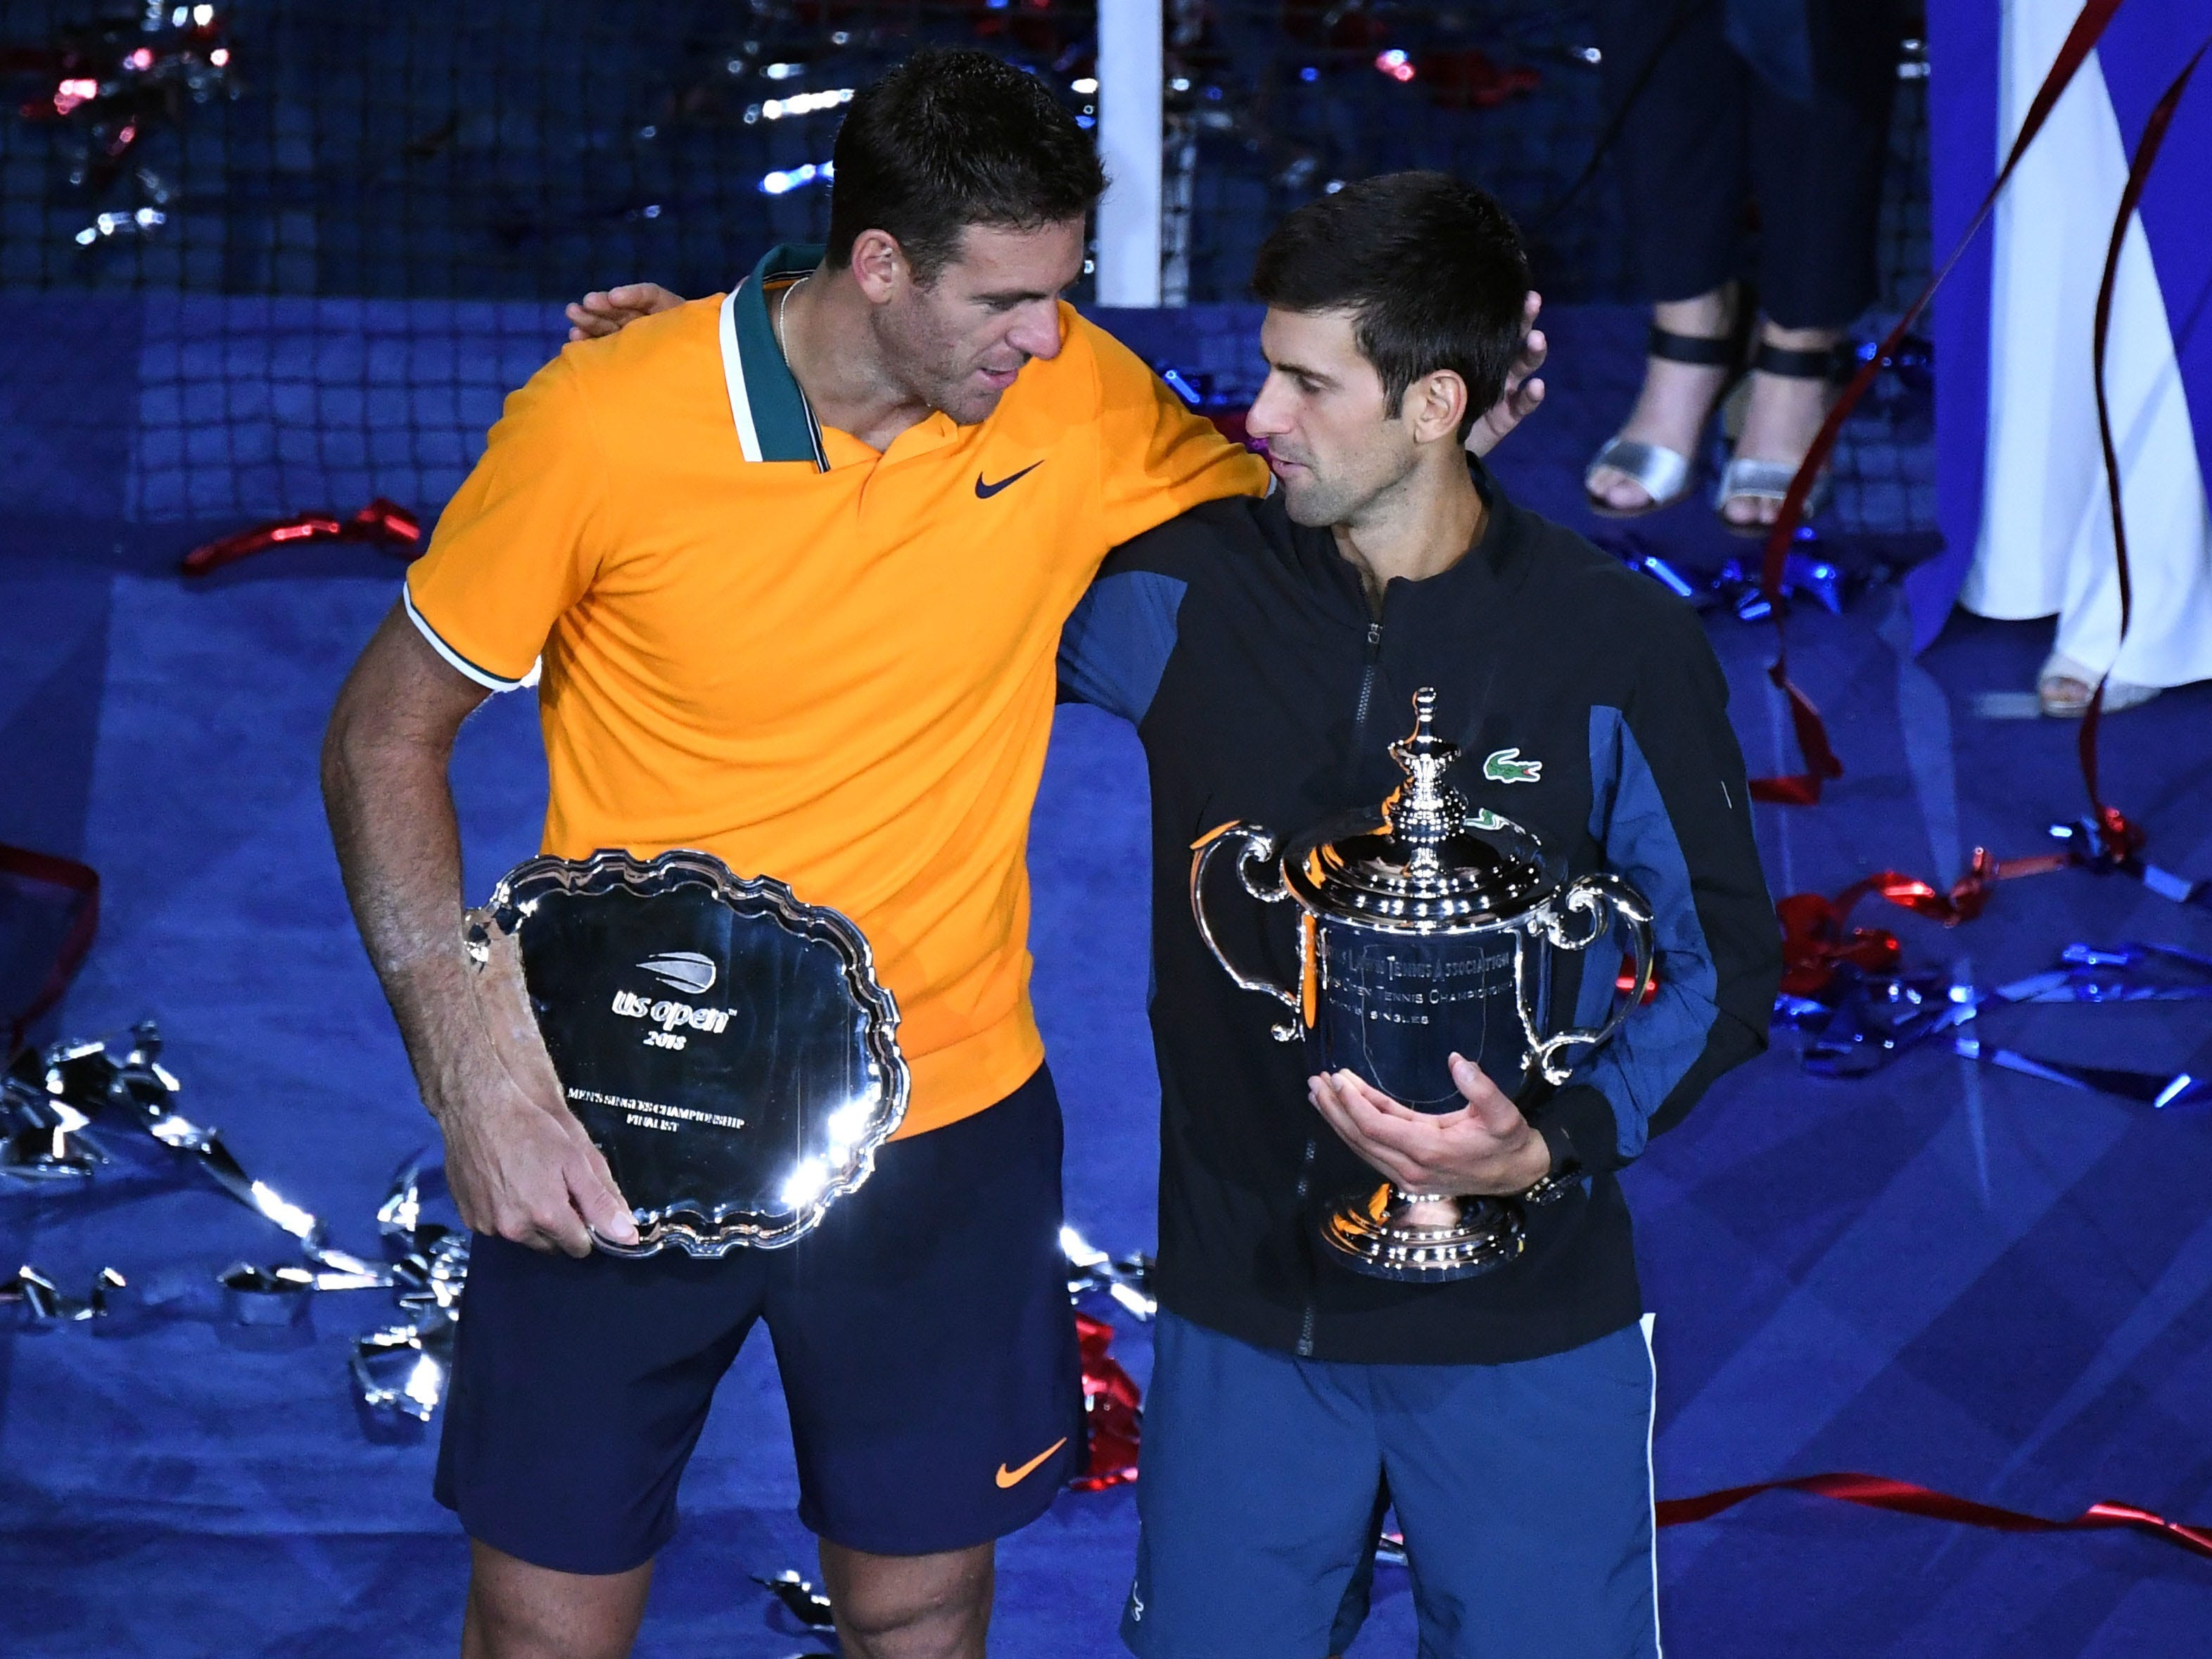 Novak Djokovic and Juan Martin del Potro embrace after the US Open final.